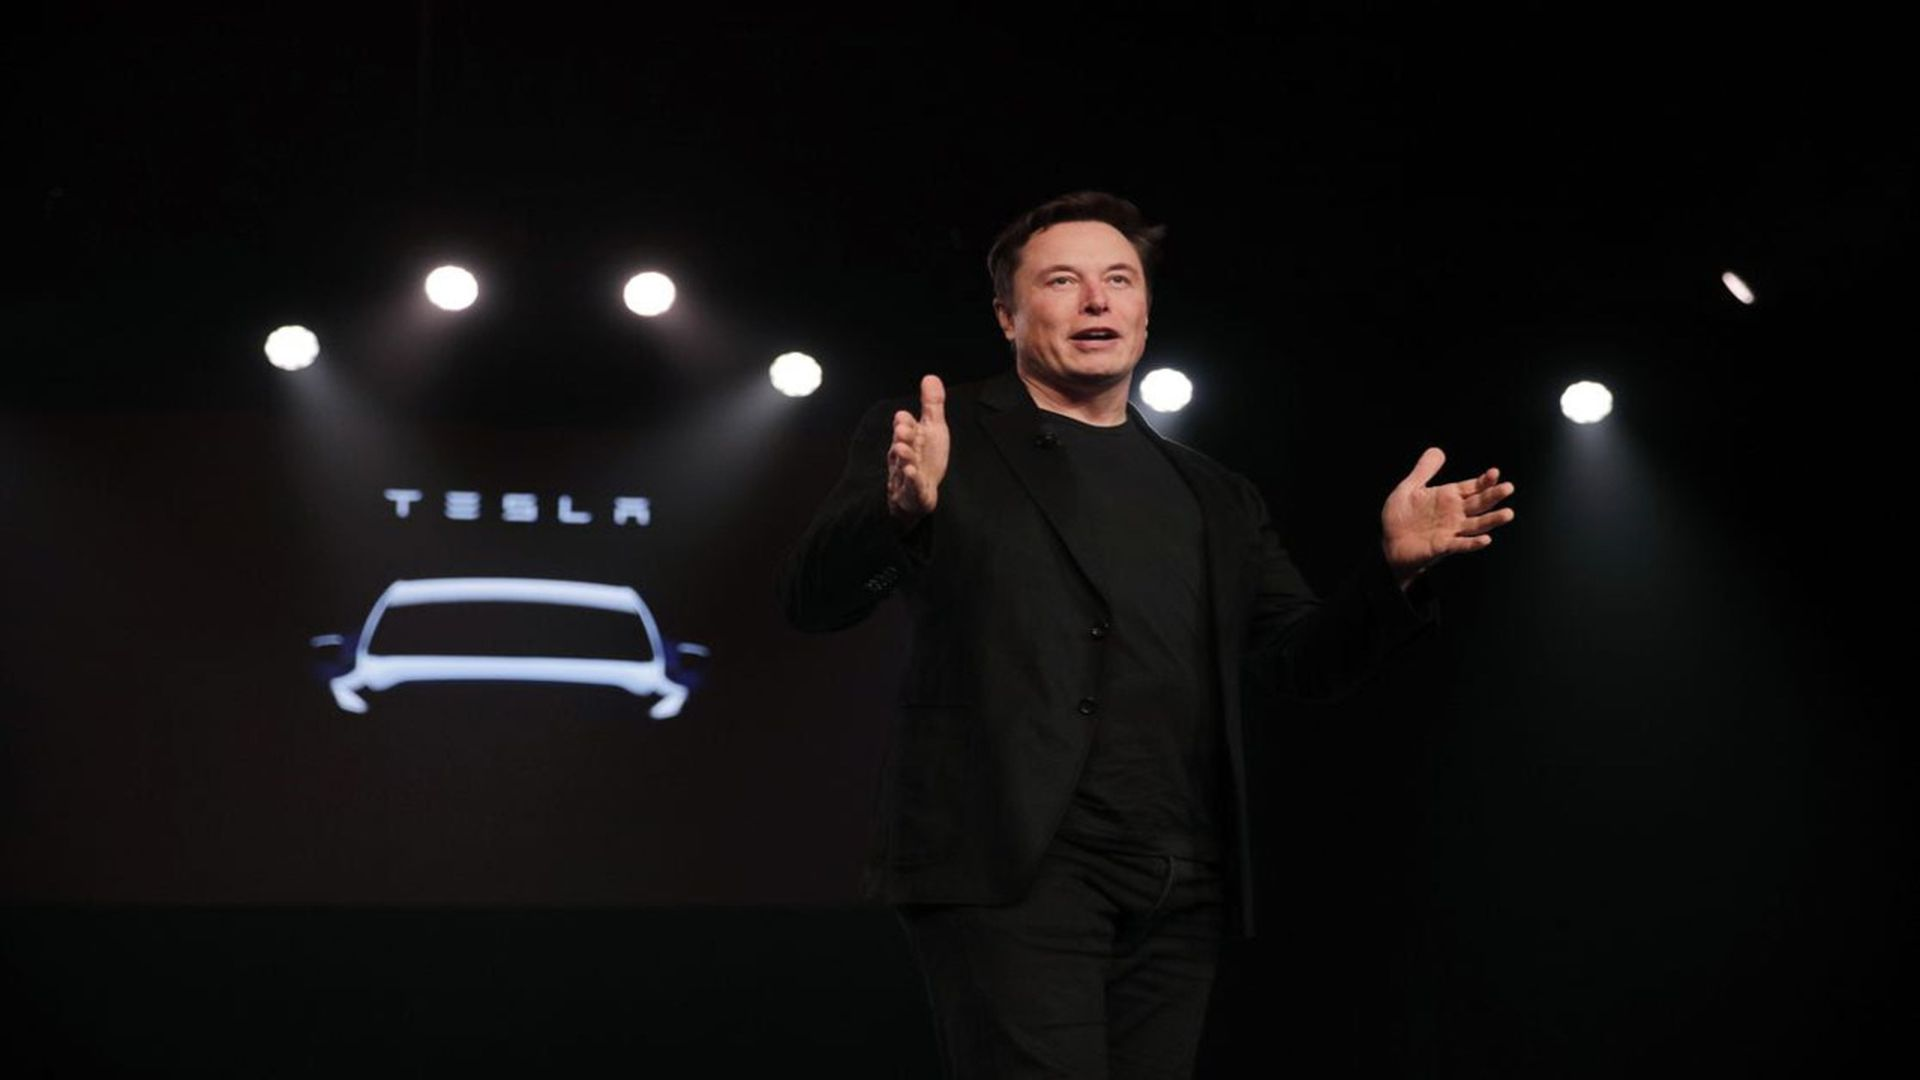 Elon Musk to announce full autonomy for Teslas despite expert skepticism